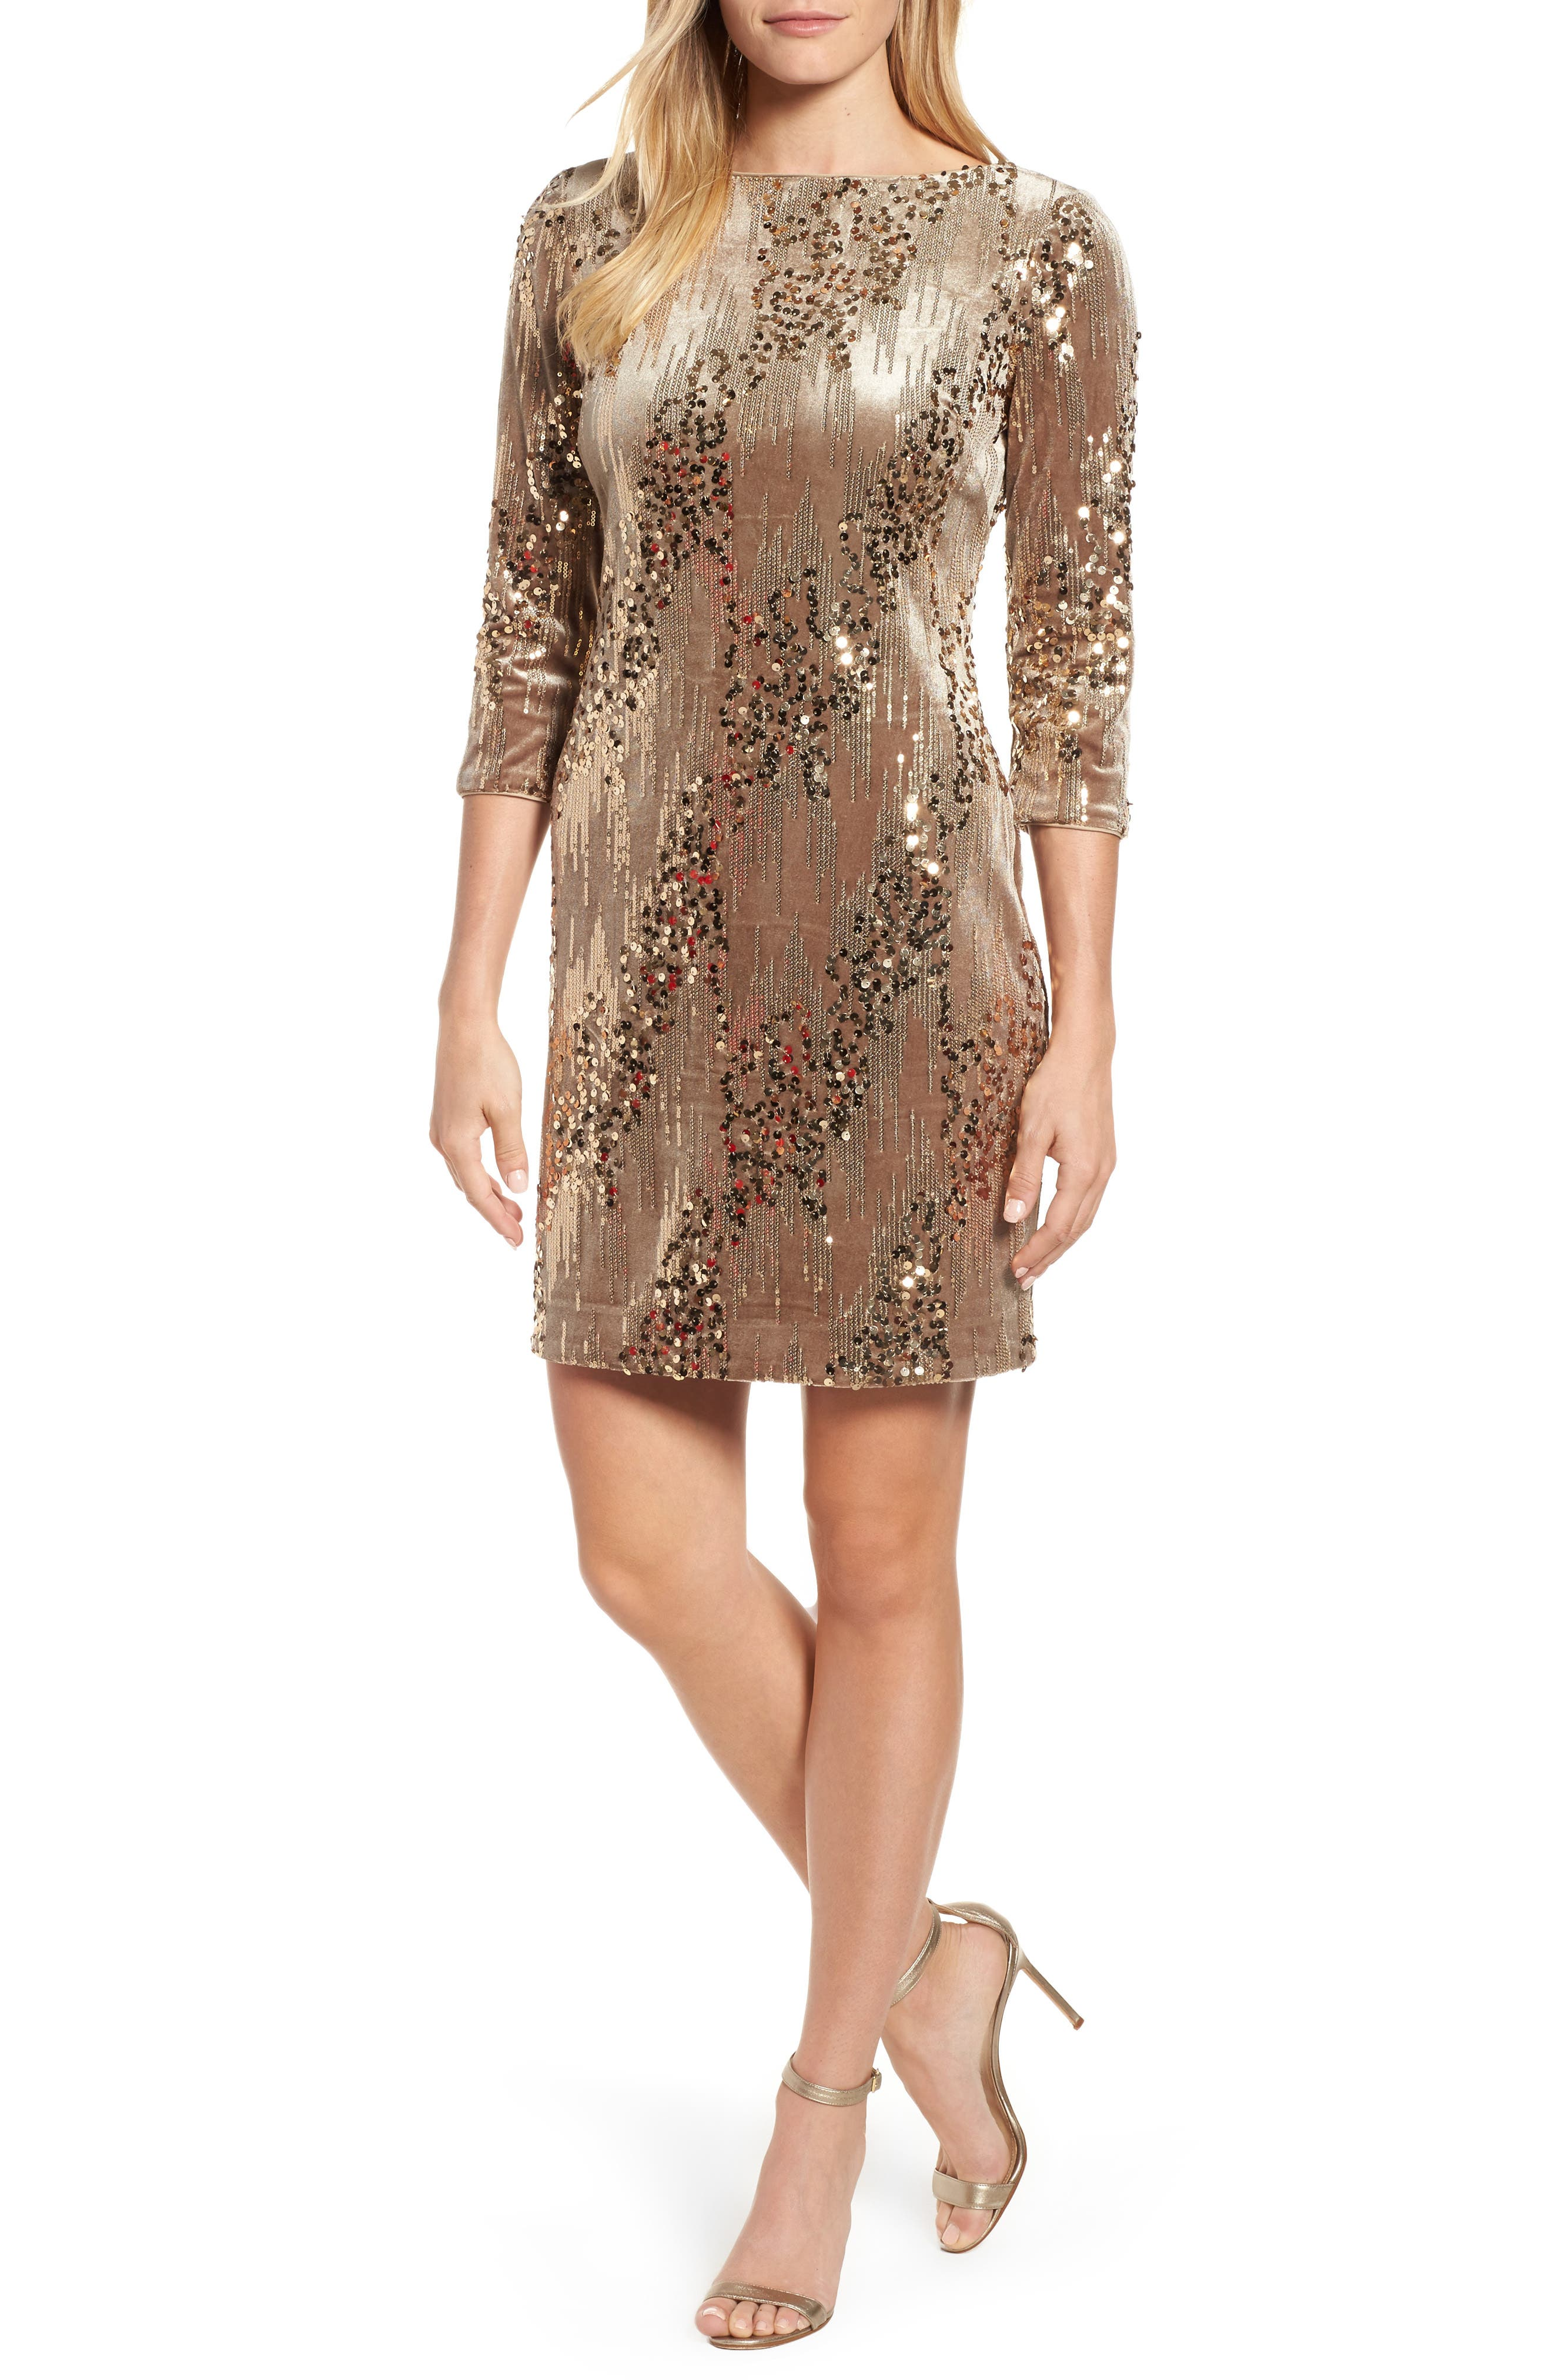 Size 6 petite cocktail dress galleries